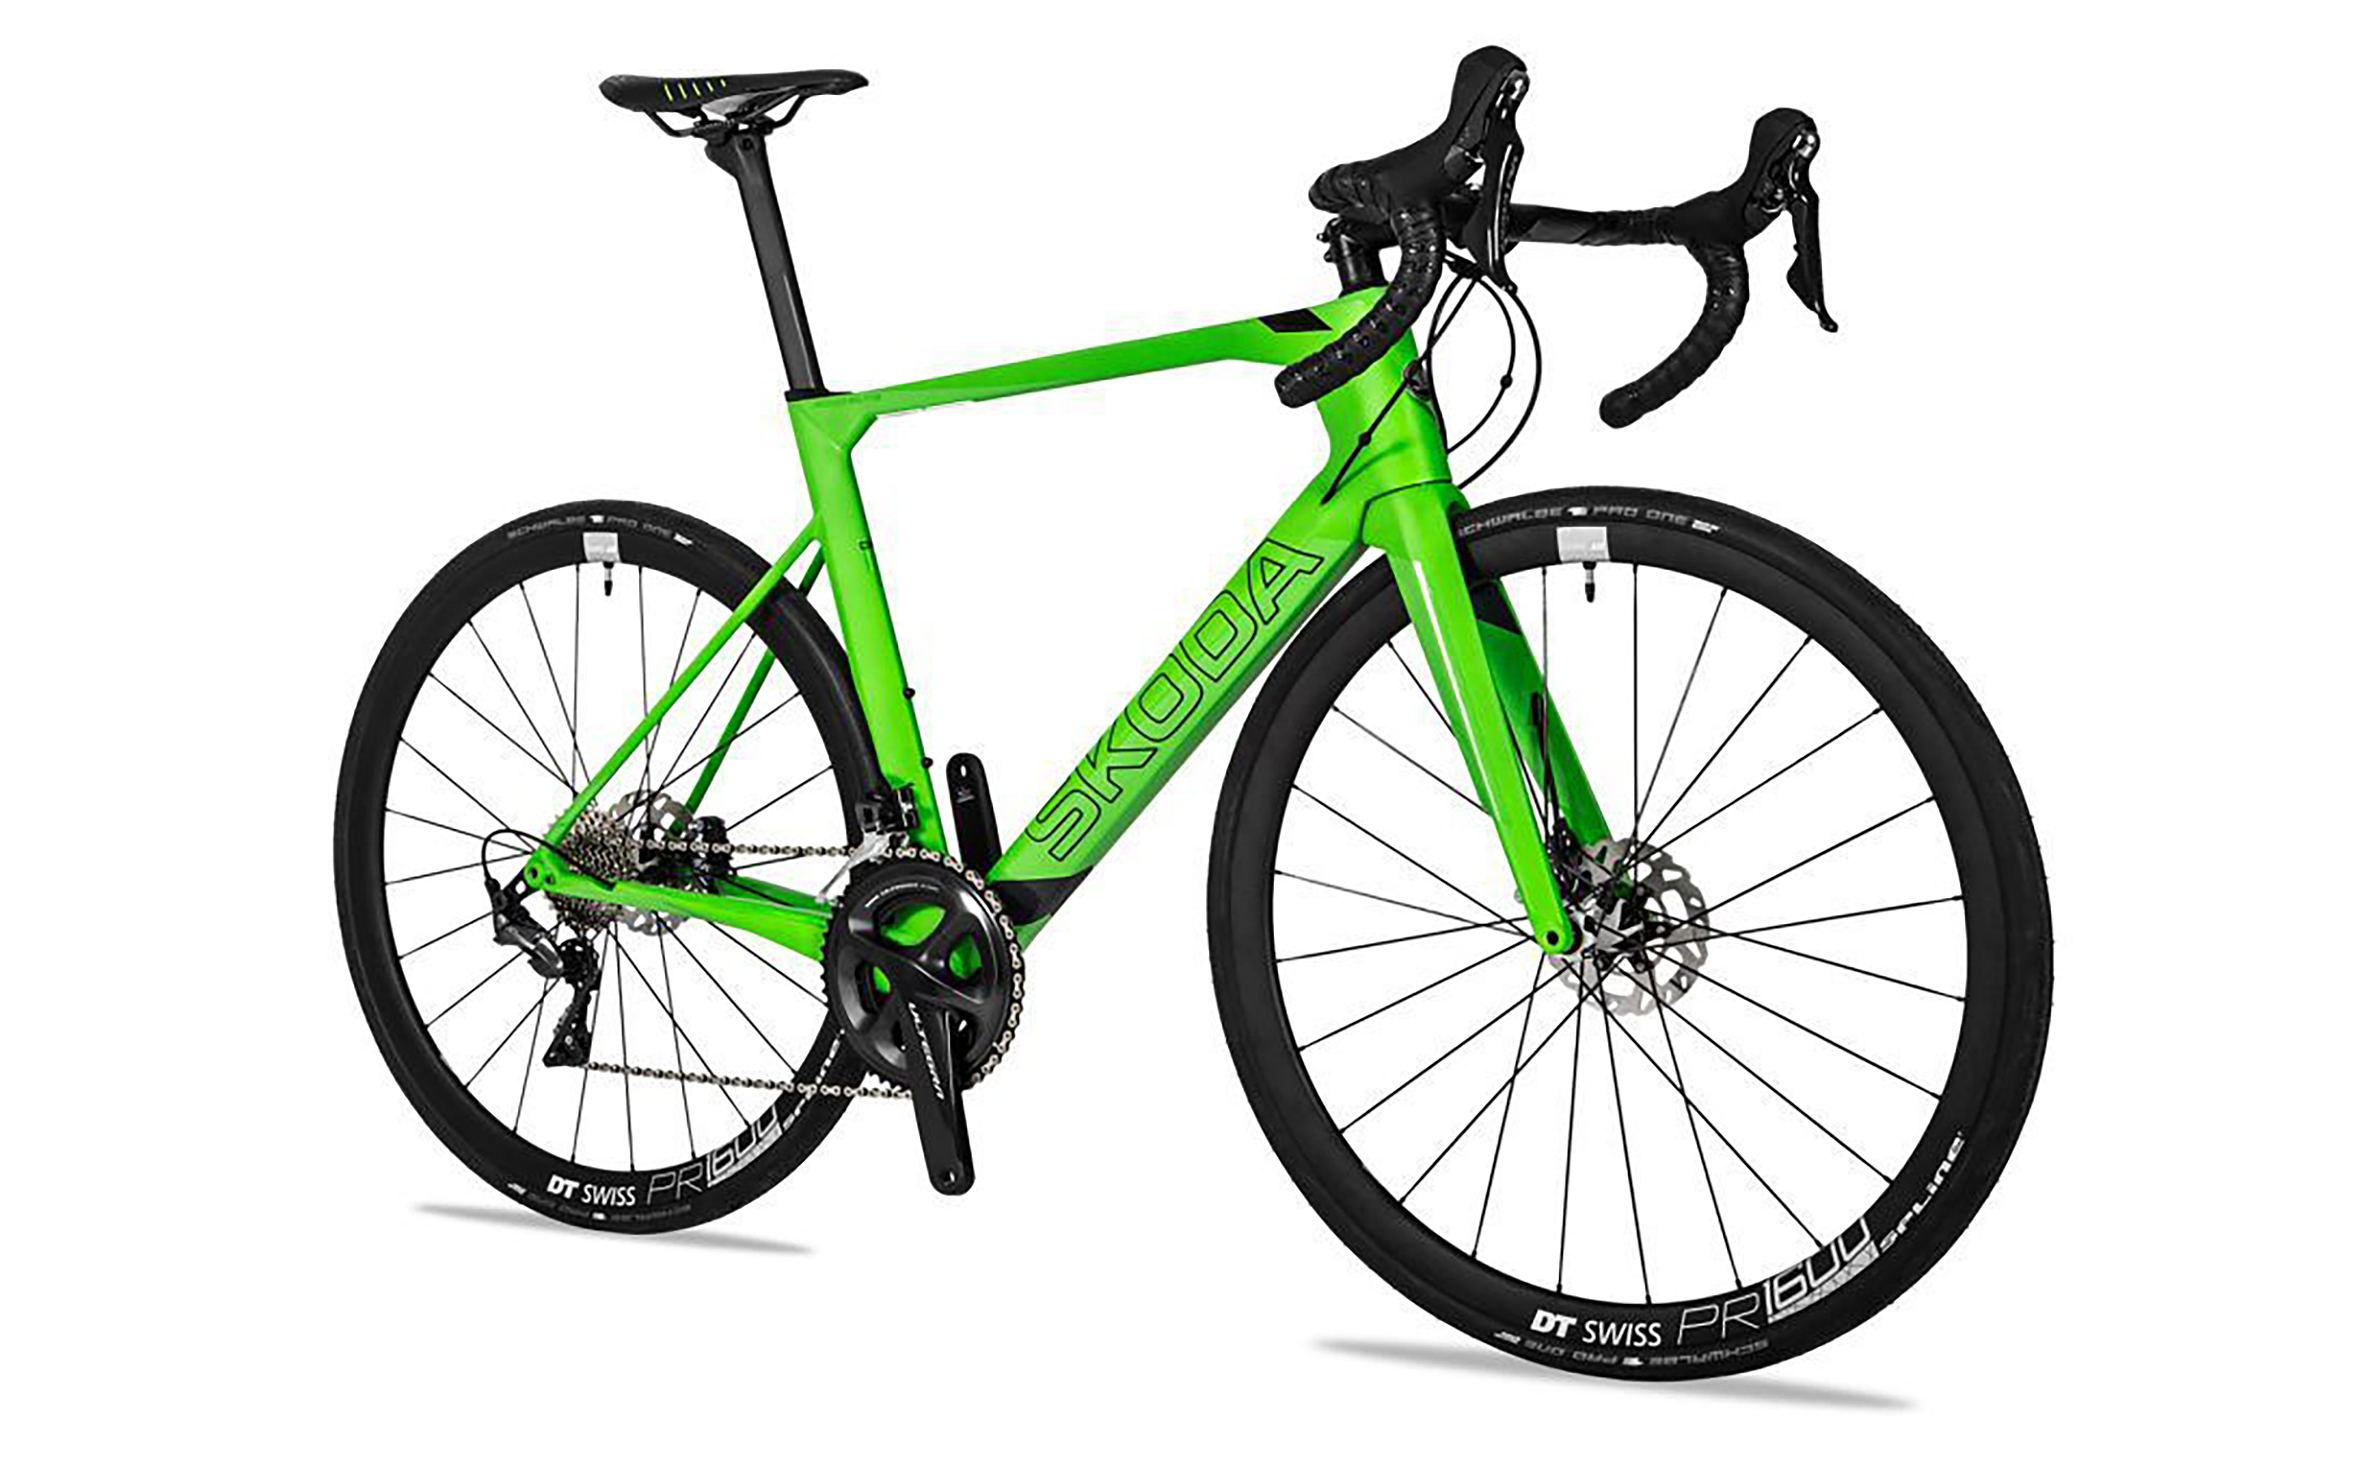 Skoda started making bicycles 125 years ago and basically, this is the nuts. Full carbon frame, forks and handlebars with aero geometry. Shimano Ultegra gearing, hydraulic brakes, DT Swiss wheels. Size L